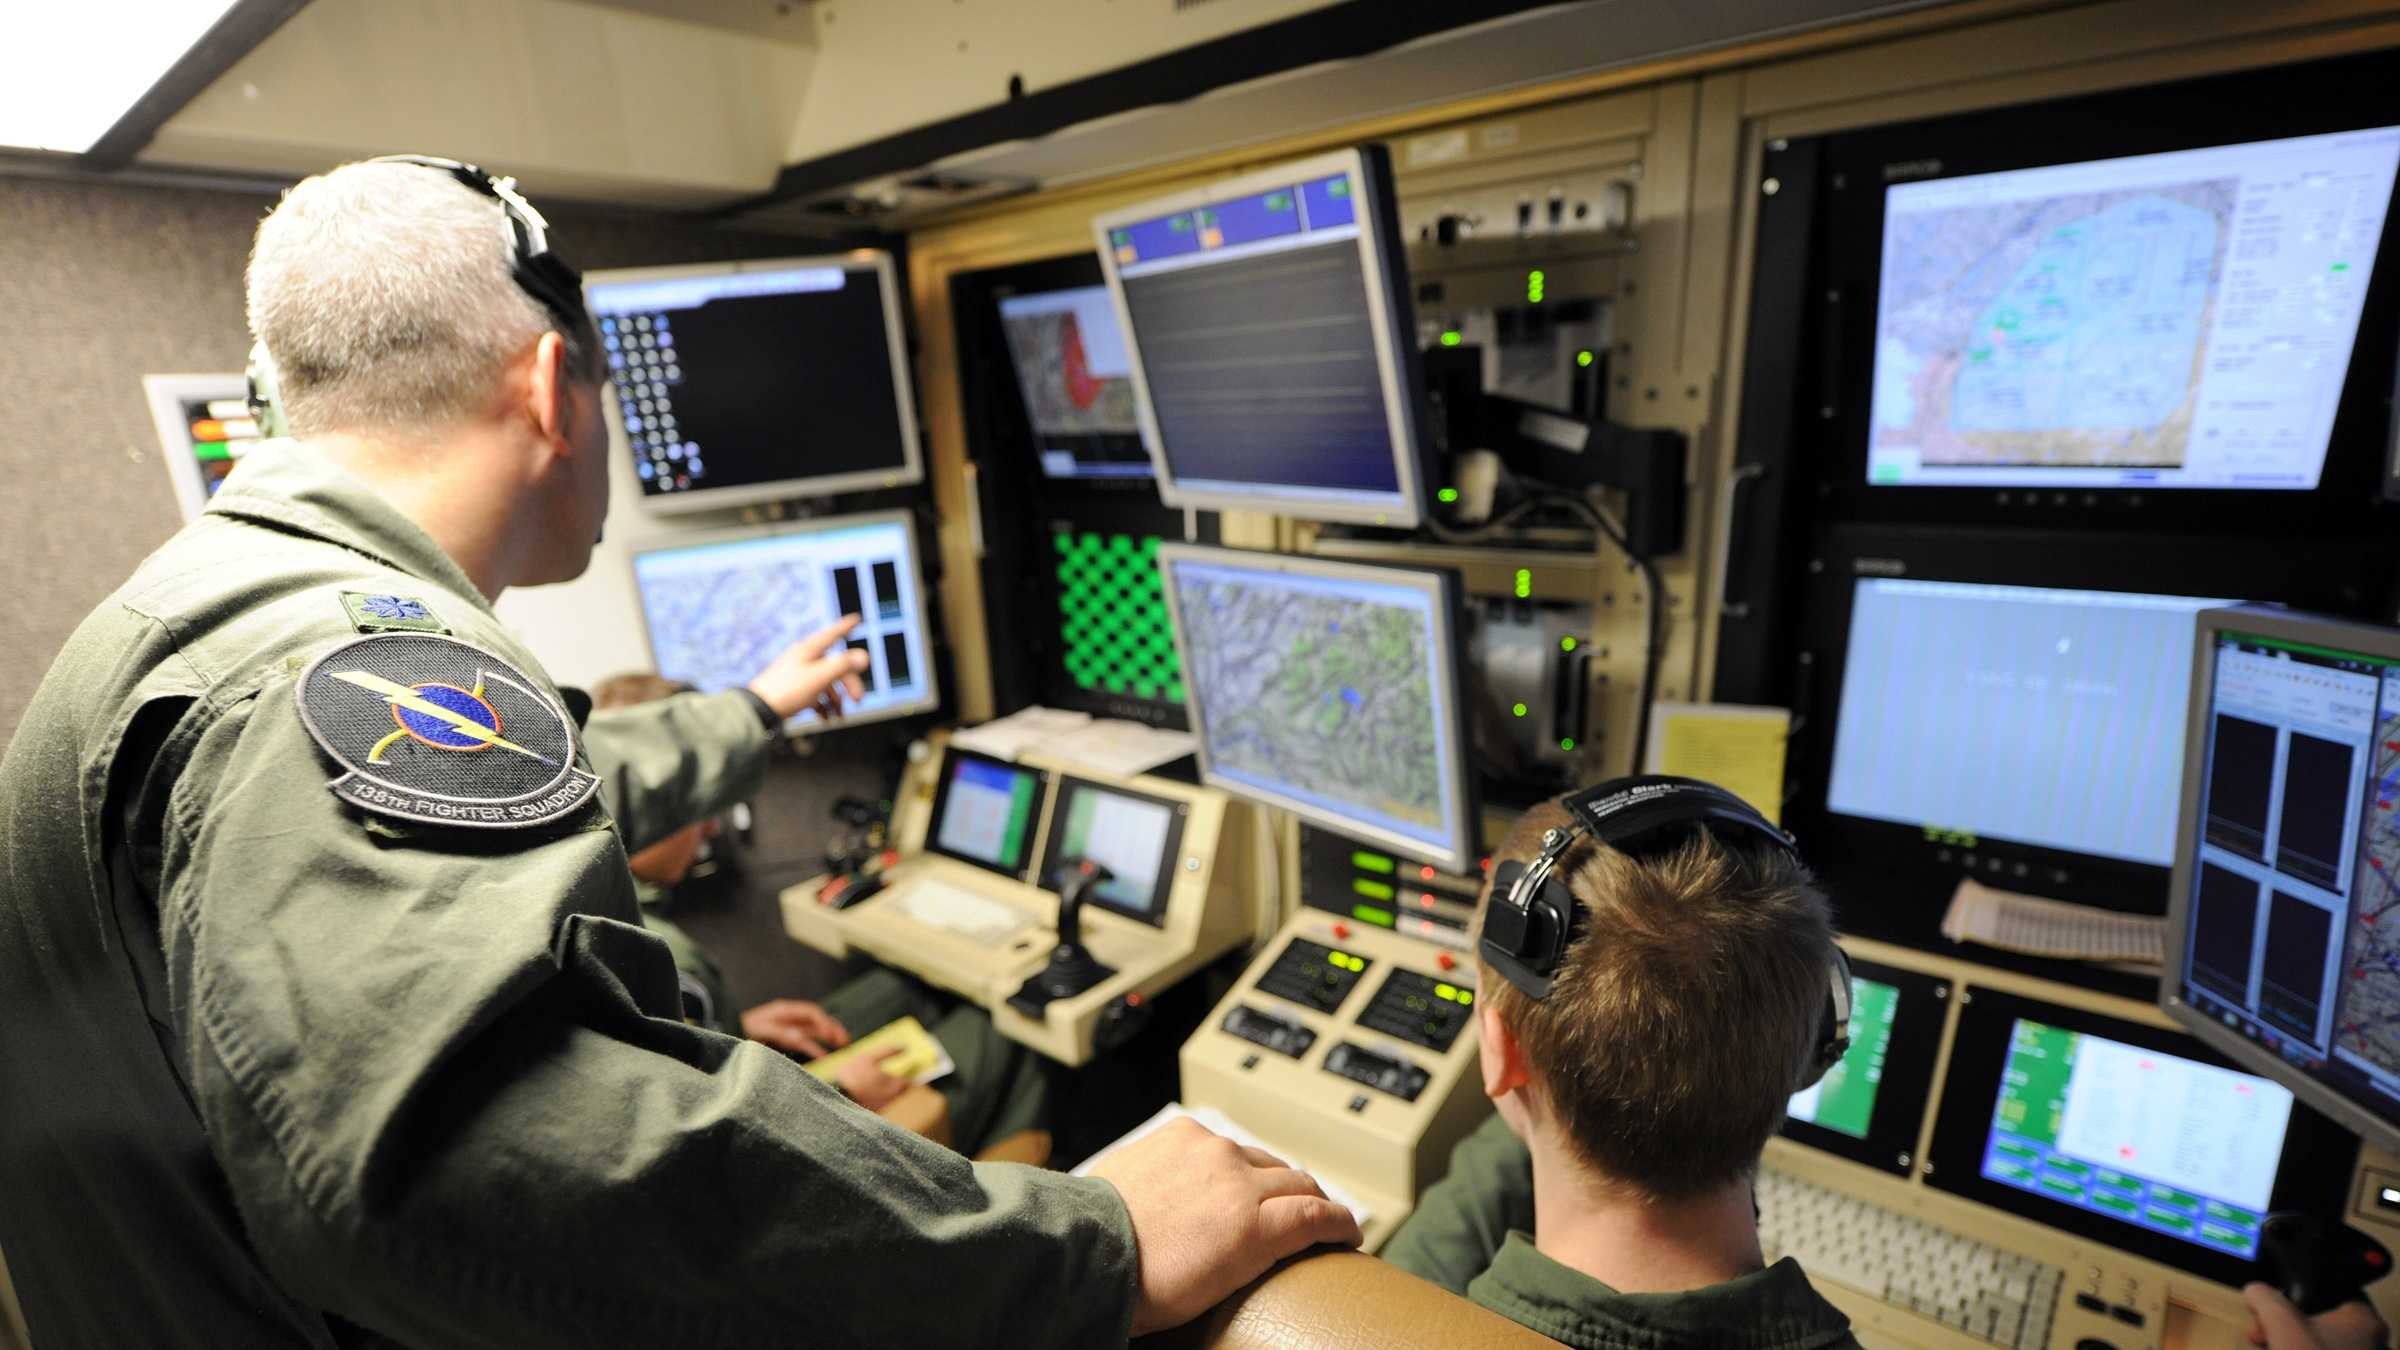 A student pilot and sensor operator man the controls of an MQ-9 Reaper in a ground-based cockpit during a training mission flown from Hancock Field Air National Guard Base, N.Y.